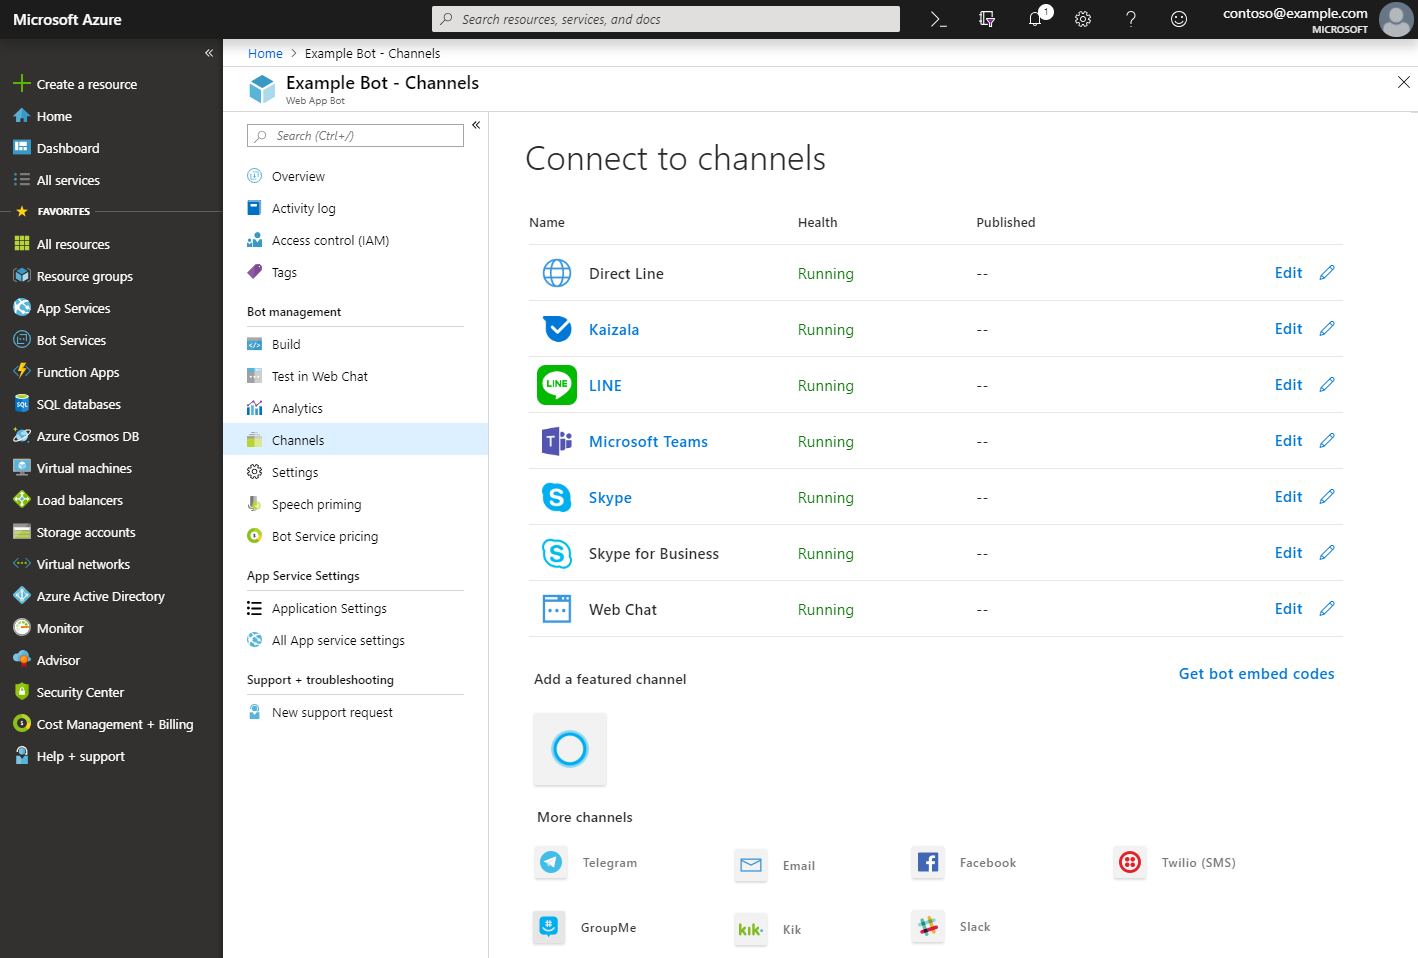 Channels blade in the Microsoft Azure portal